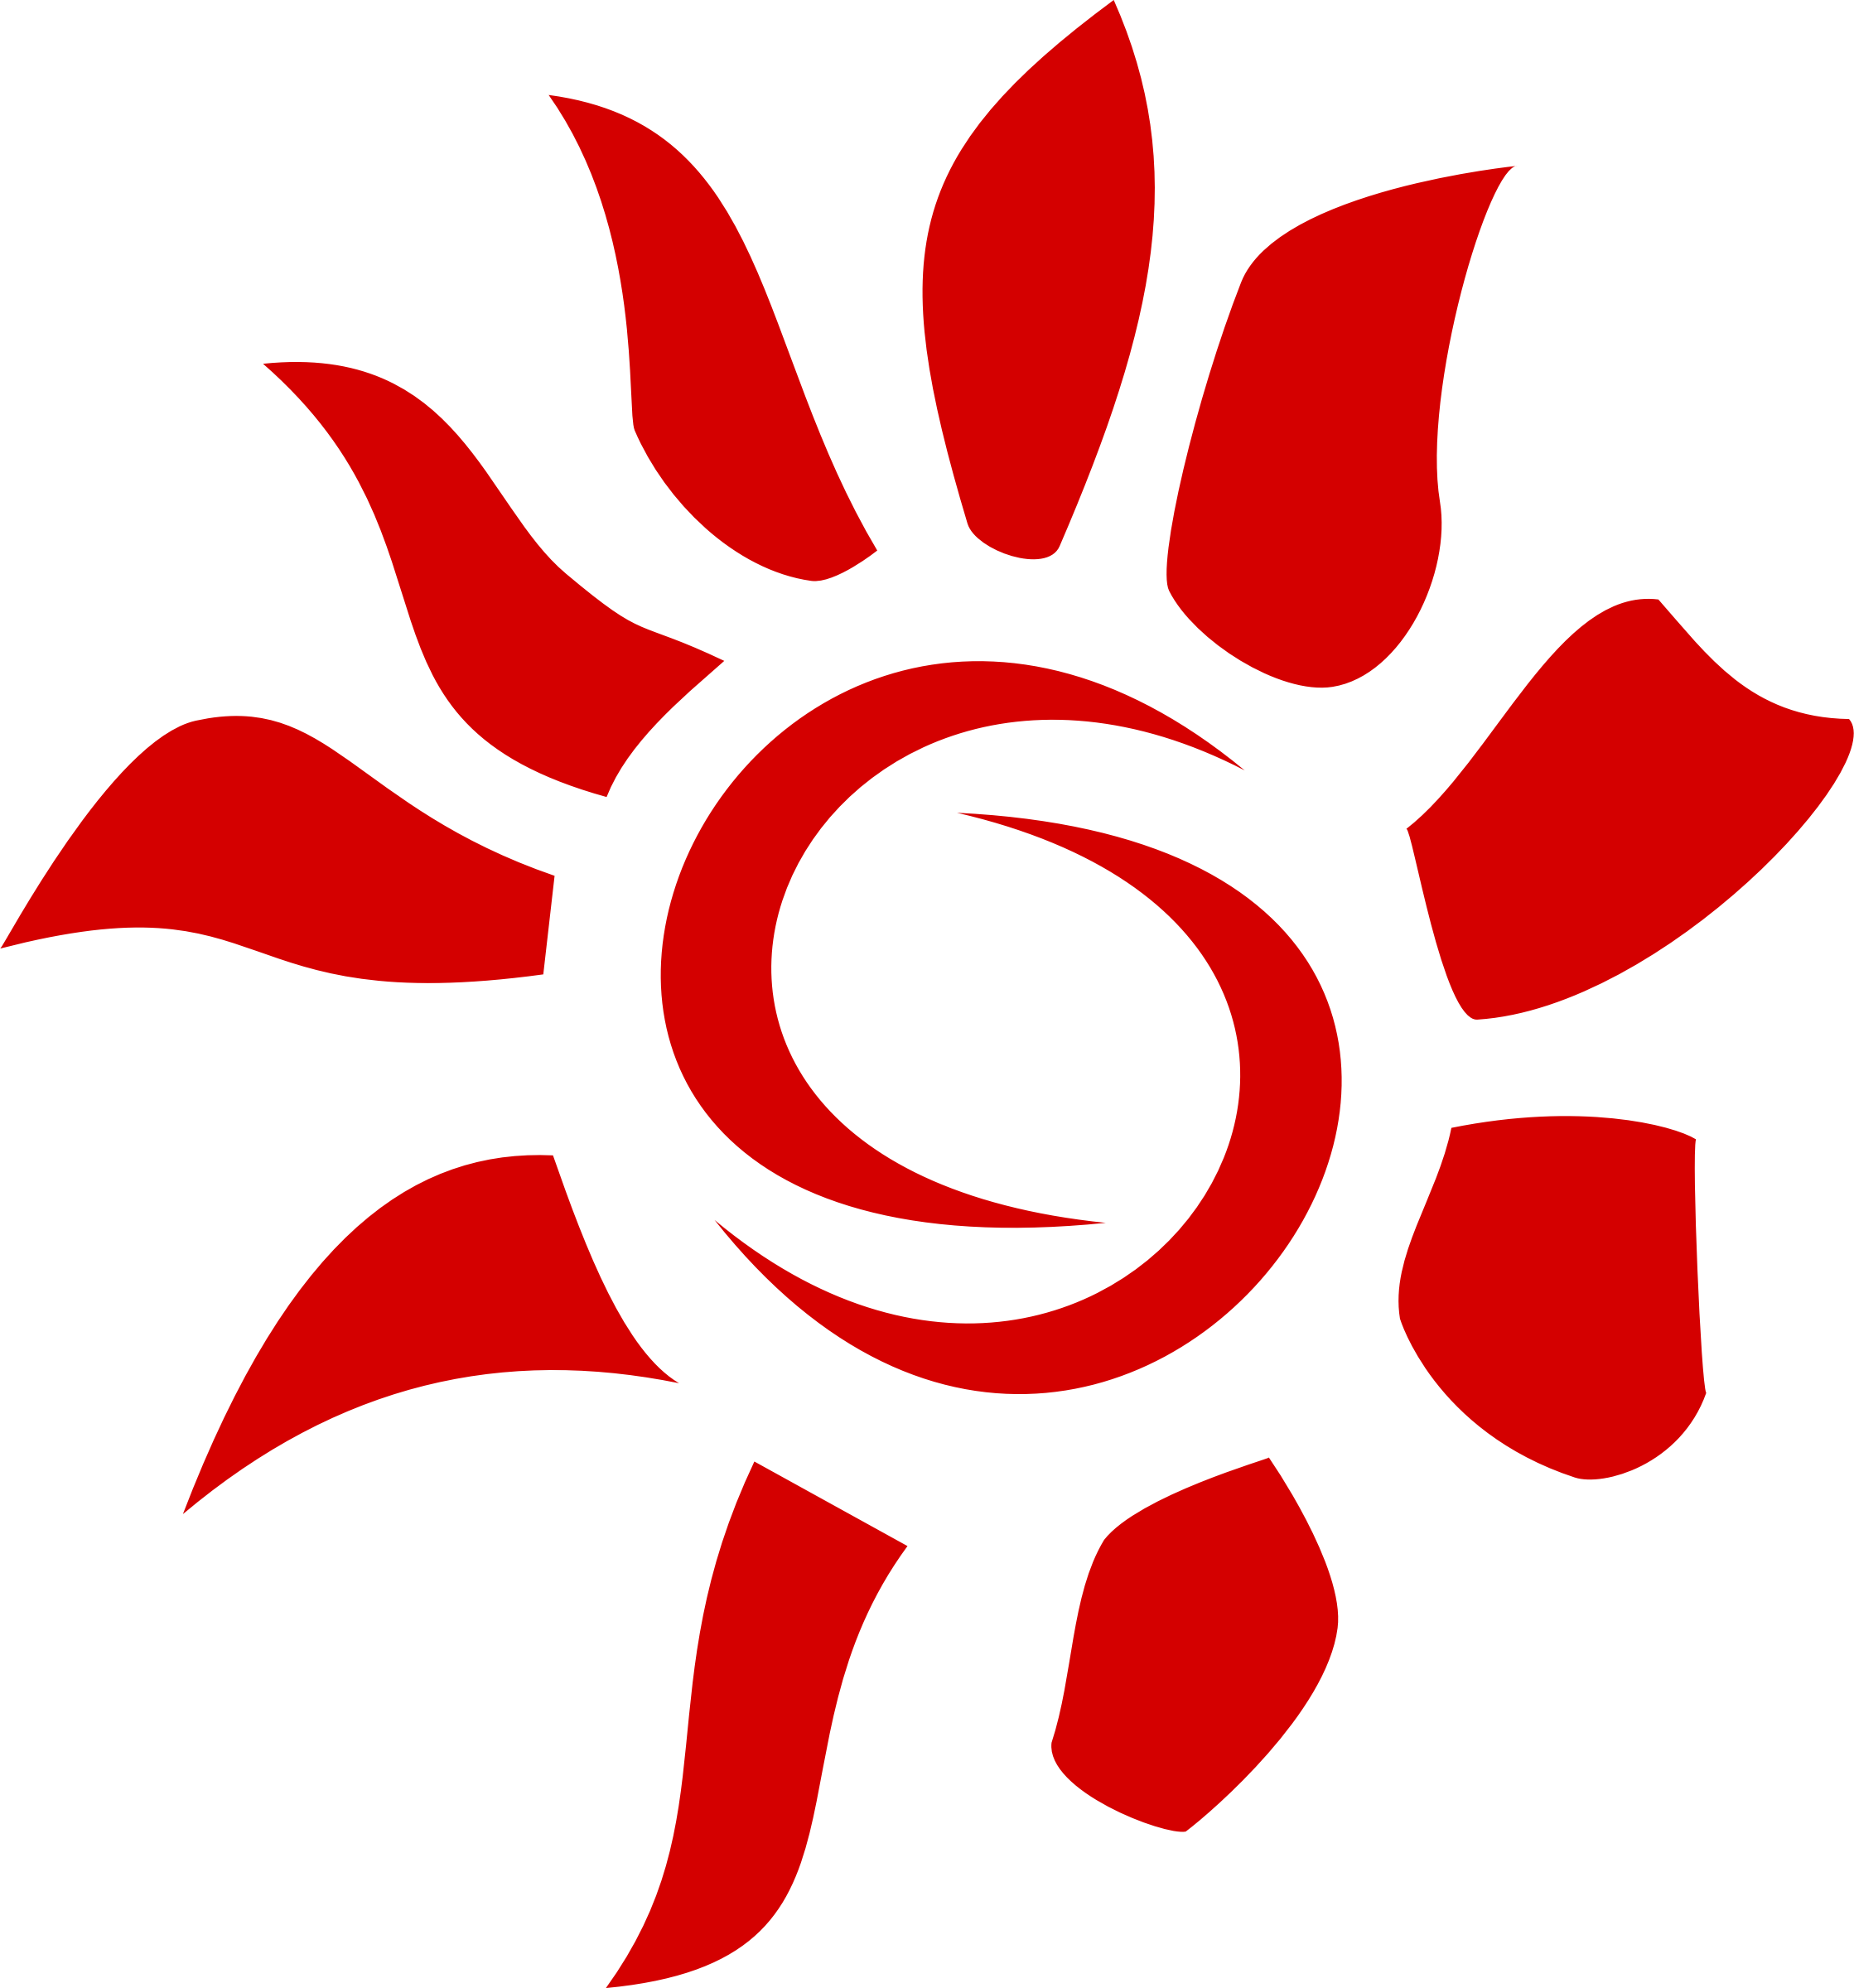 16 pointed sun clipart svg stock Clipart - Sun Icon svg stock